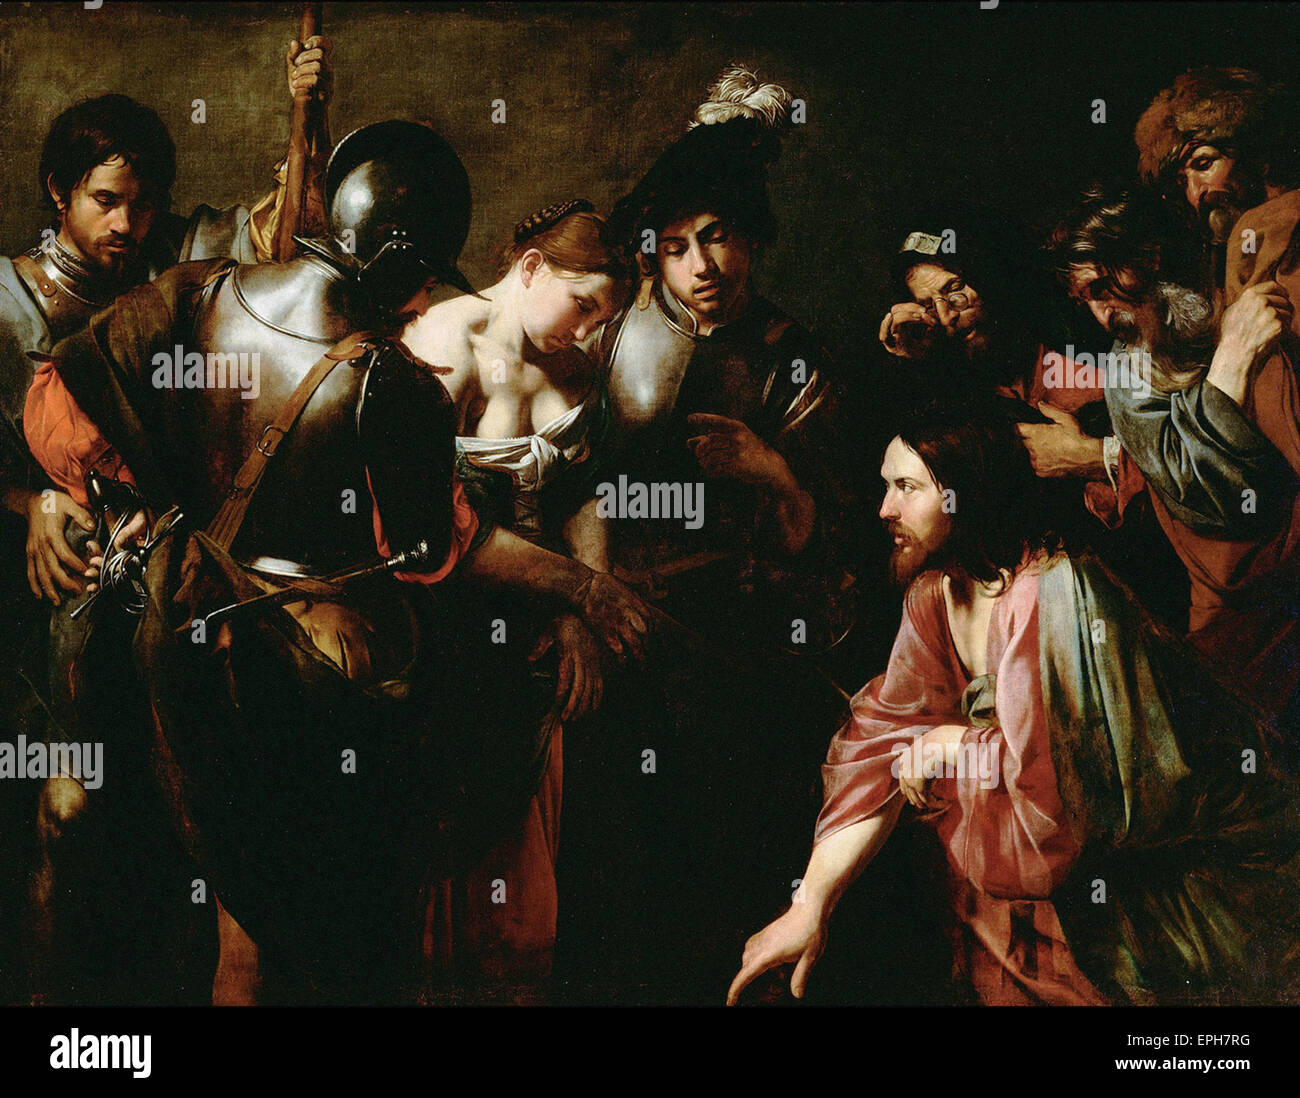 Valentin de Boulogne  Christ and the Adulteress - Stock Image